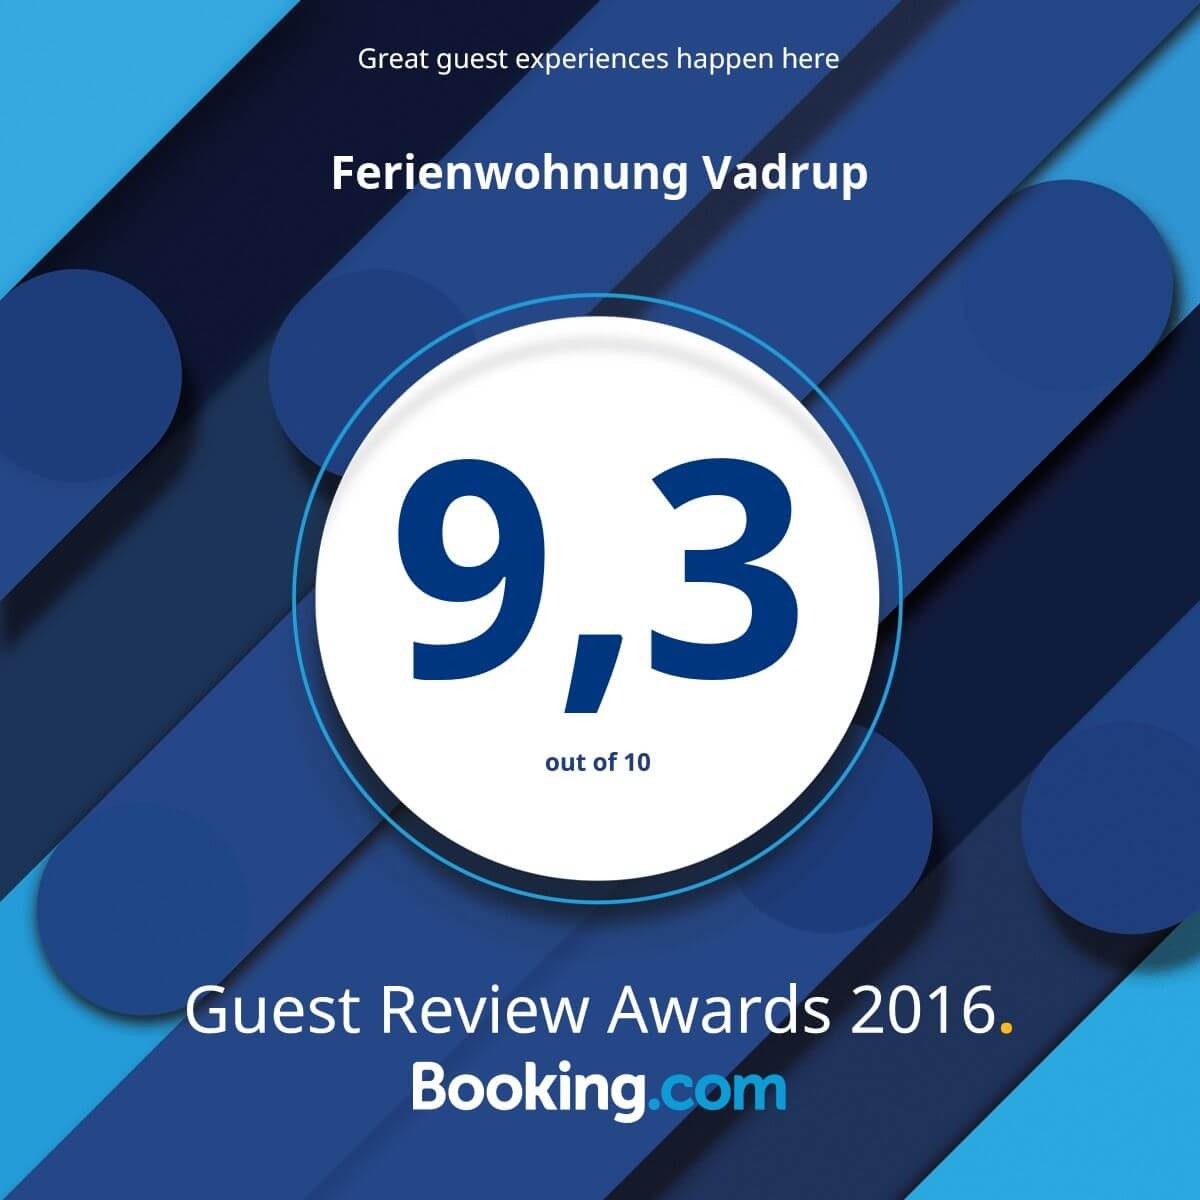 Ferienwohnung Vadrup (Tintrup) - Booking.com Guest Review Awards